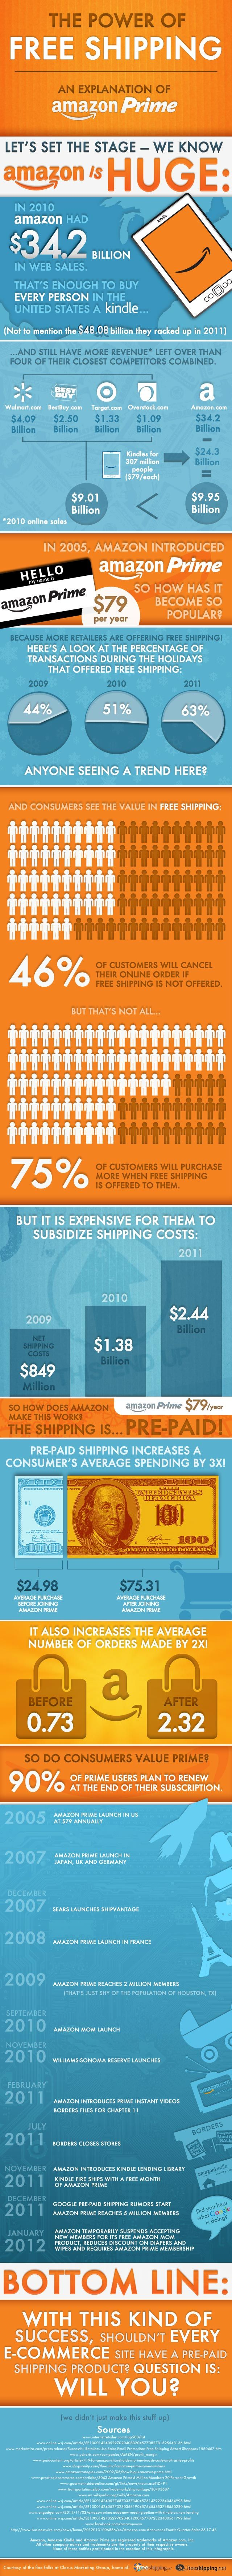 The Power of FREE Shipping - Amazon Prime [Infographic]